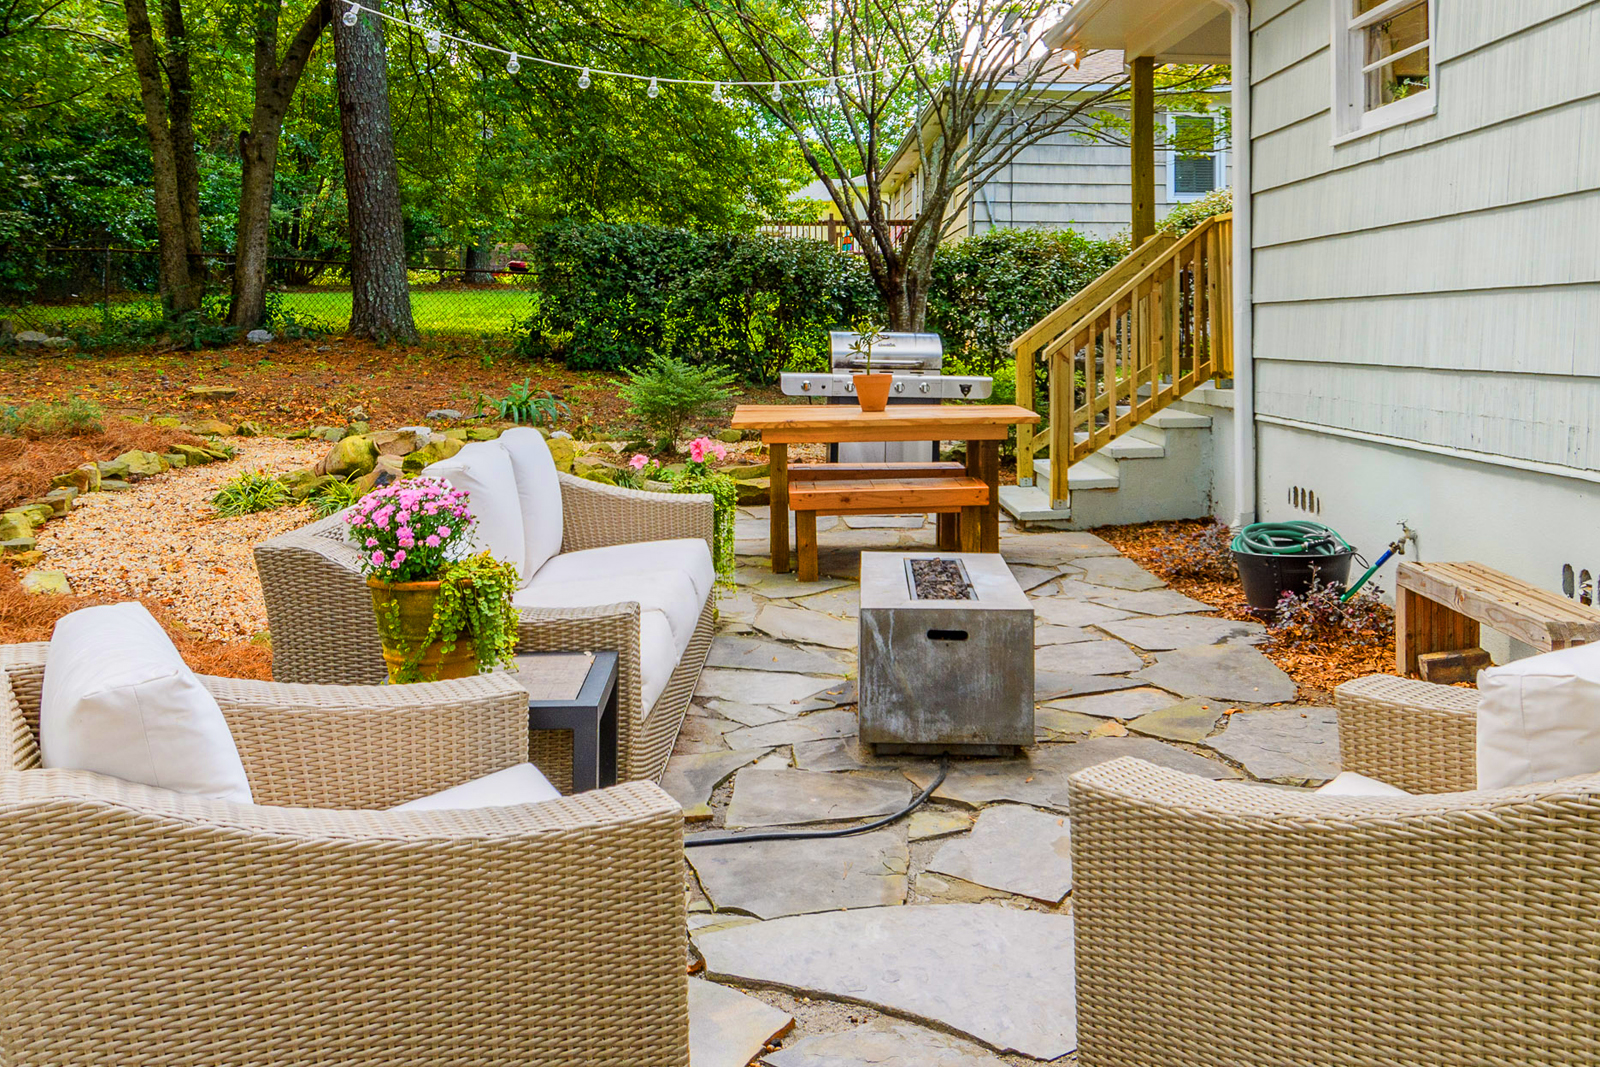 makeover ideas small backyard landscaping